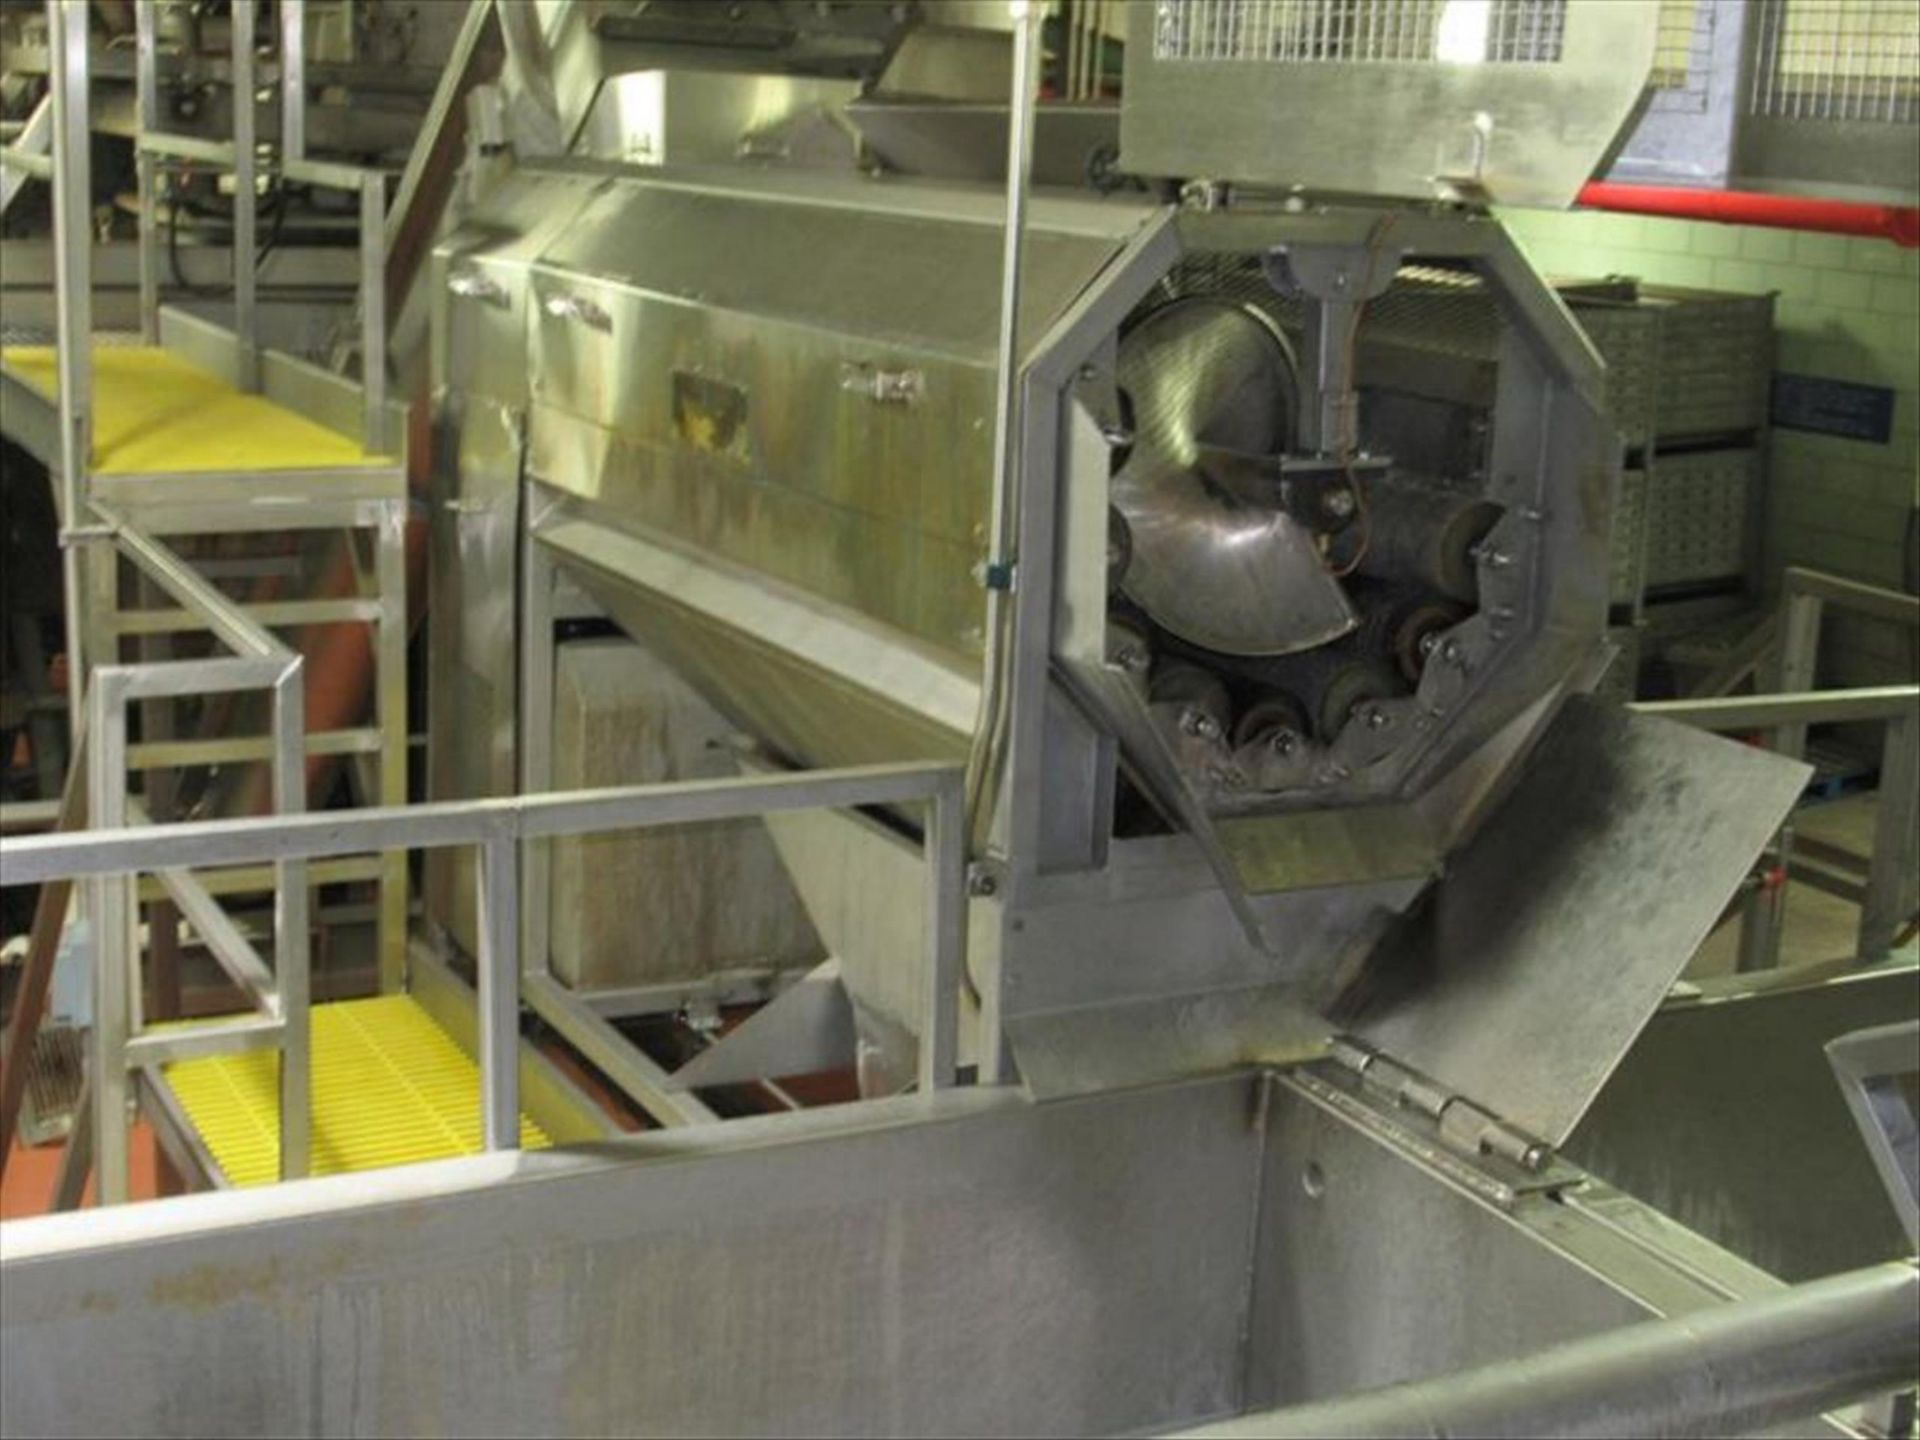 Lot 164 - Abrasive peeler continuous washing feeling machine, 4 brush and 4 abrasive rollers, approx 4000